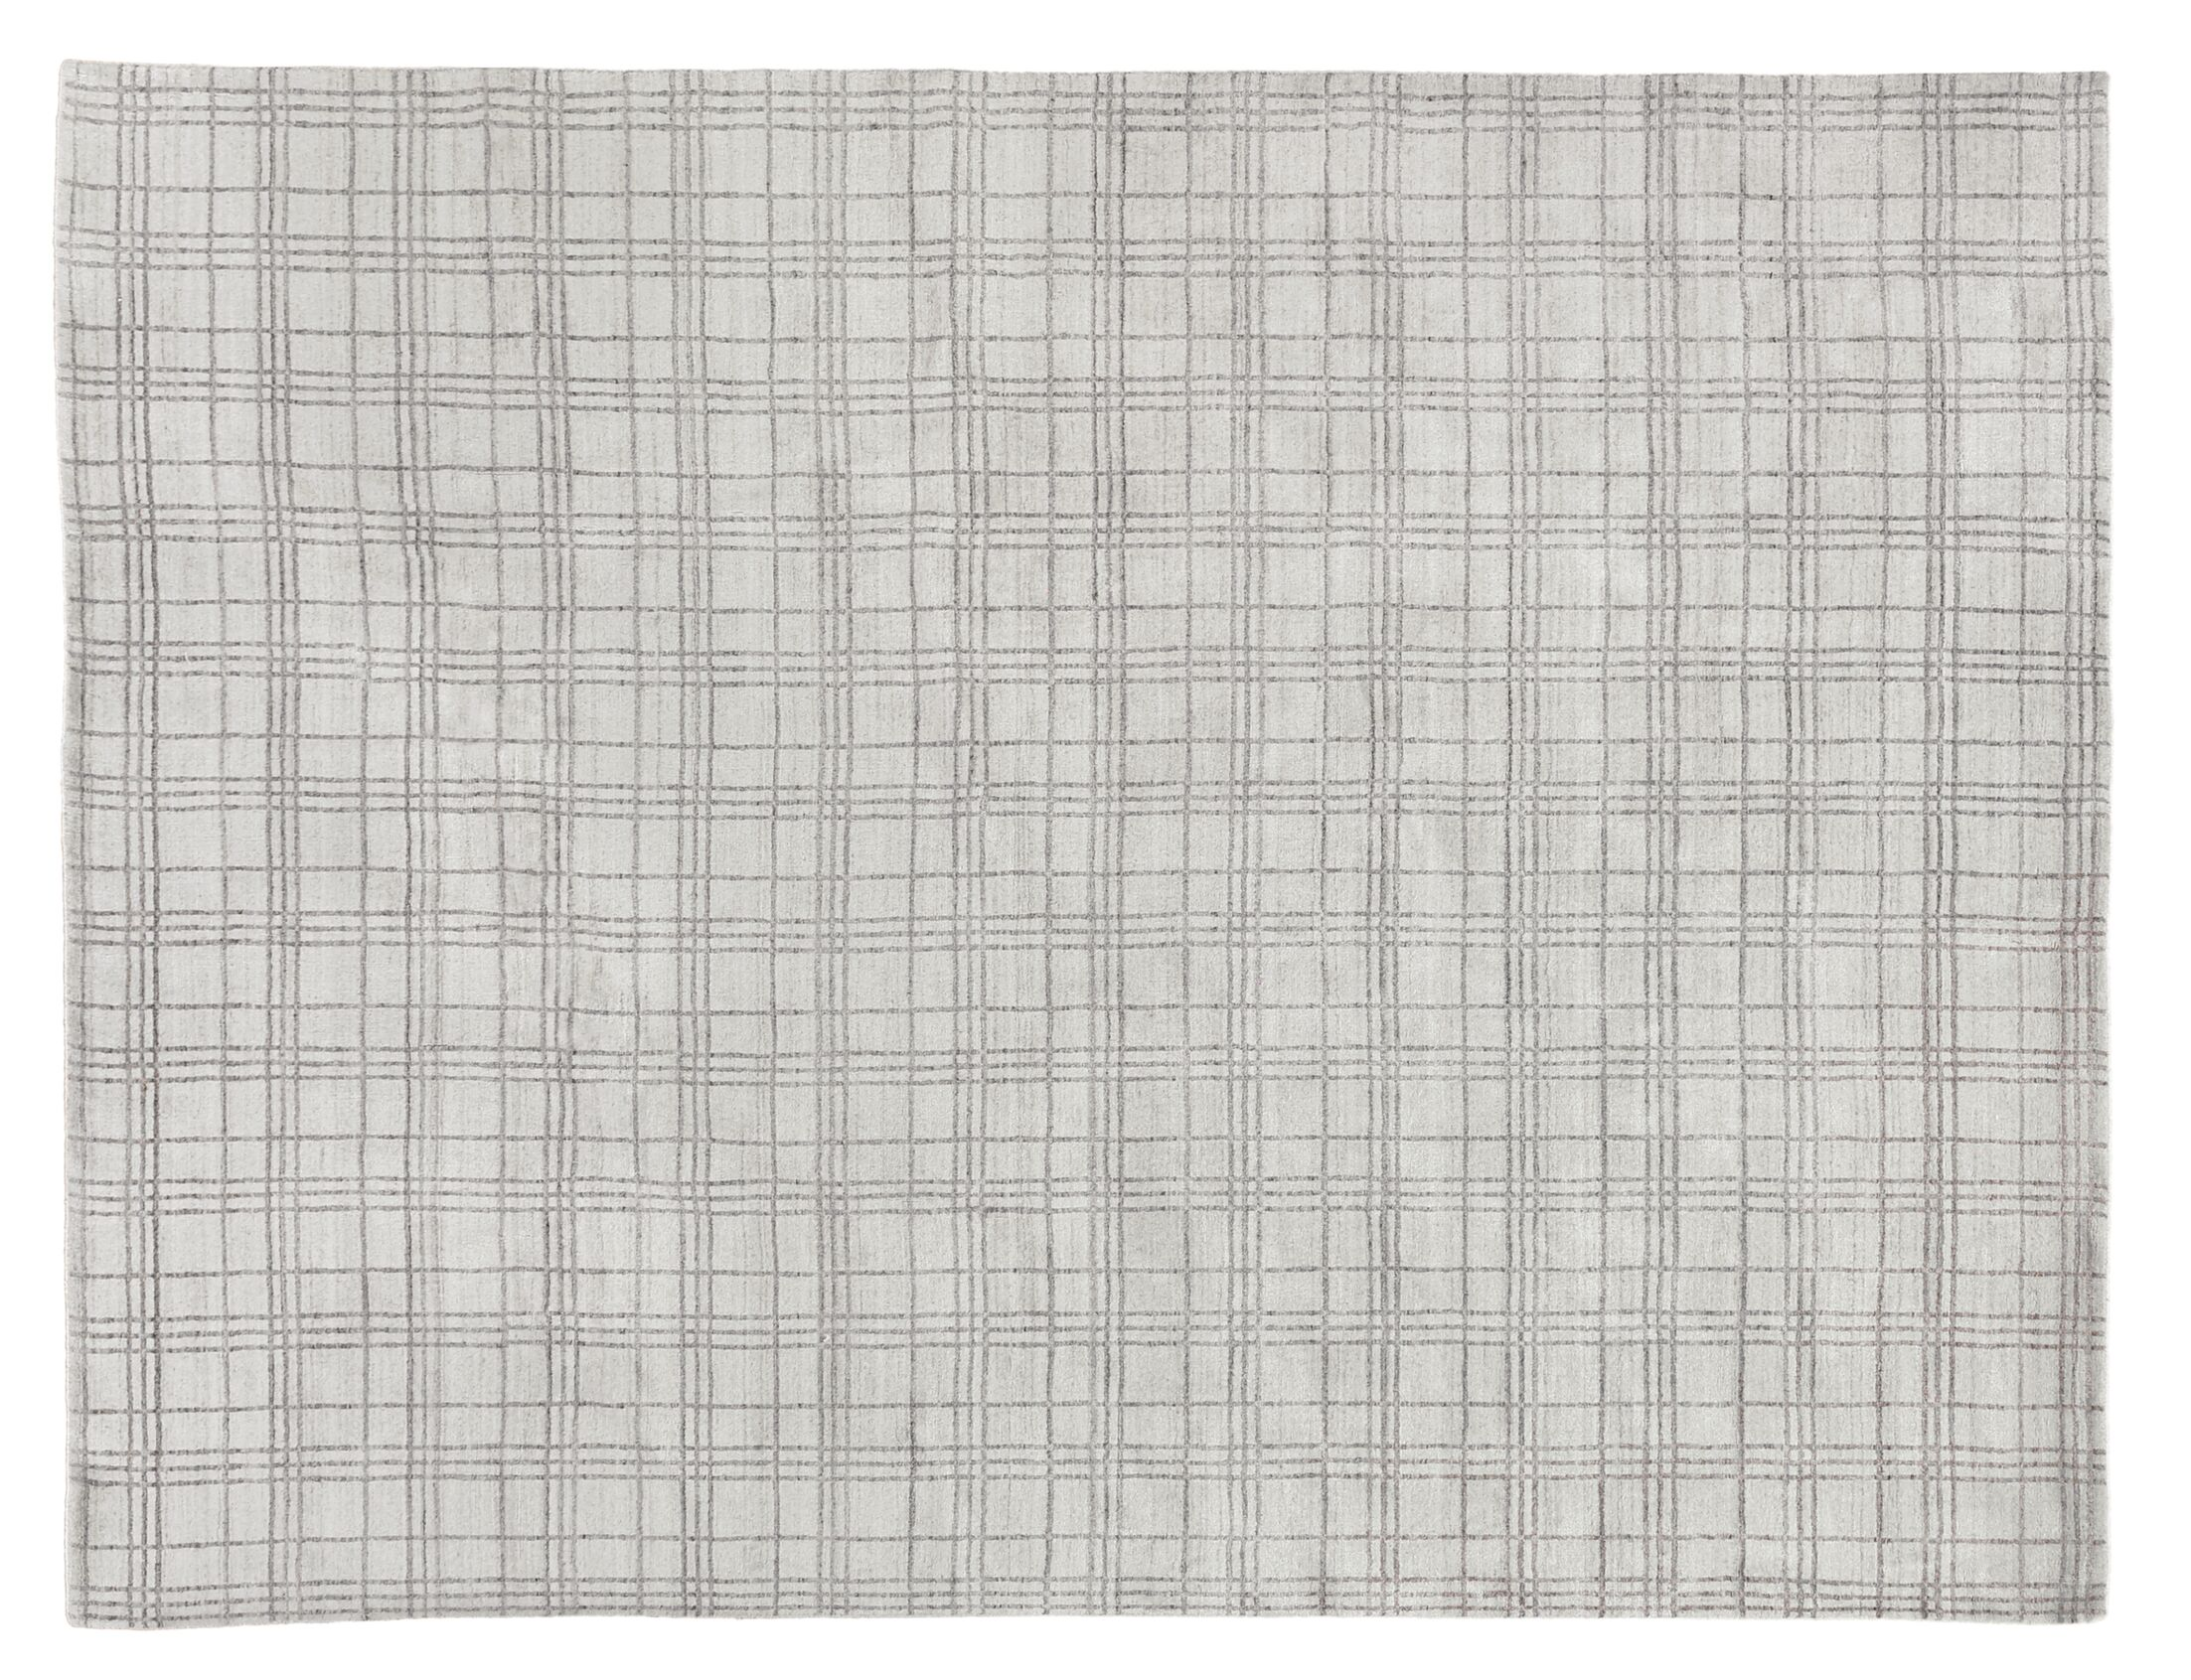 Fairbanks Hand-Woven Beige Silver Area Rug Rug Size: Rectangle 12' x 15'